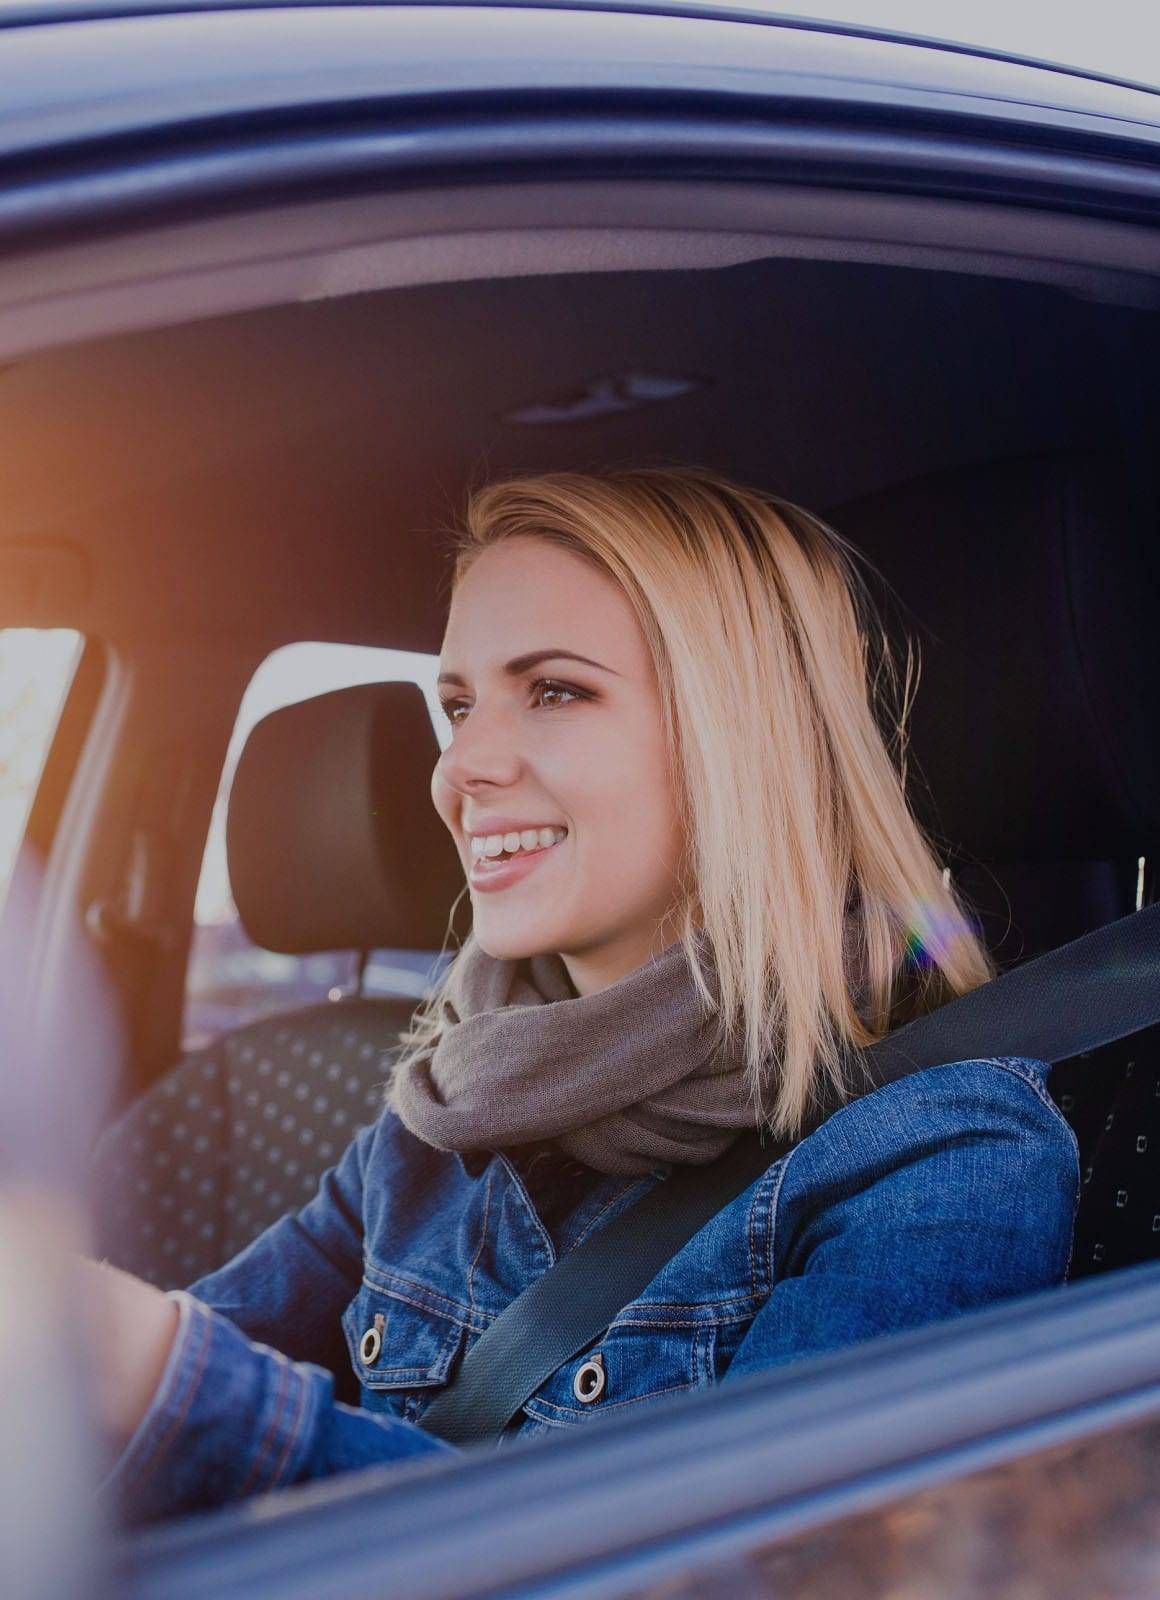 We'll help you find cheap car insurance for new drivers